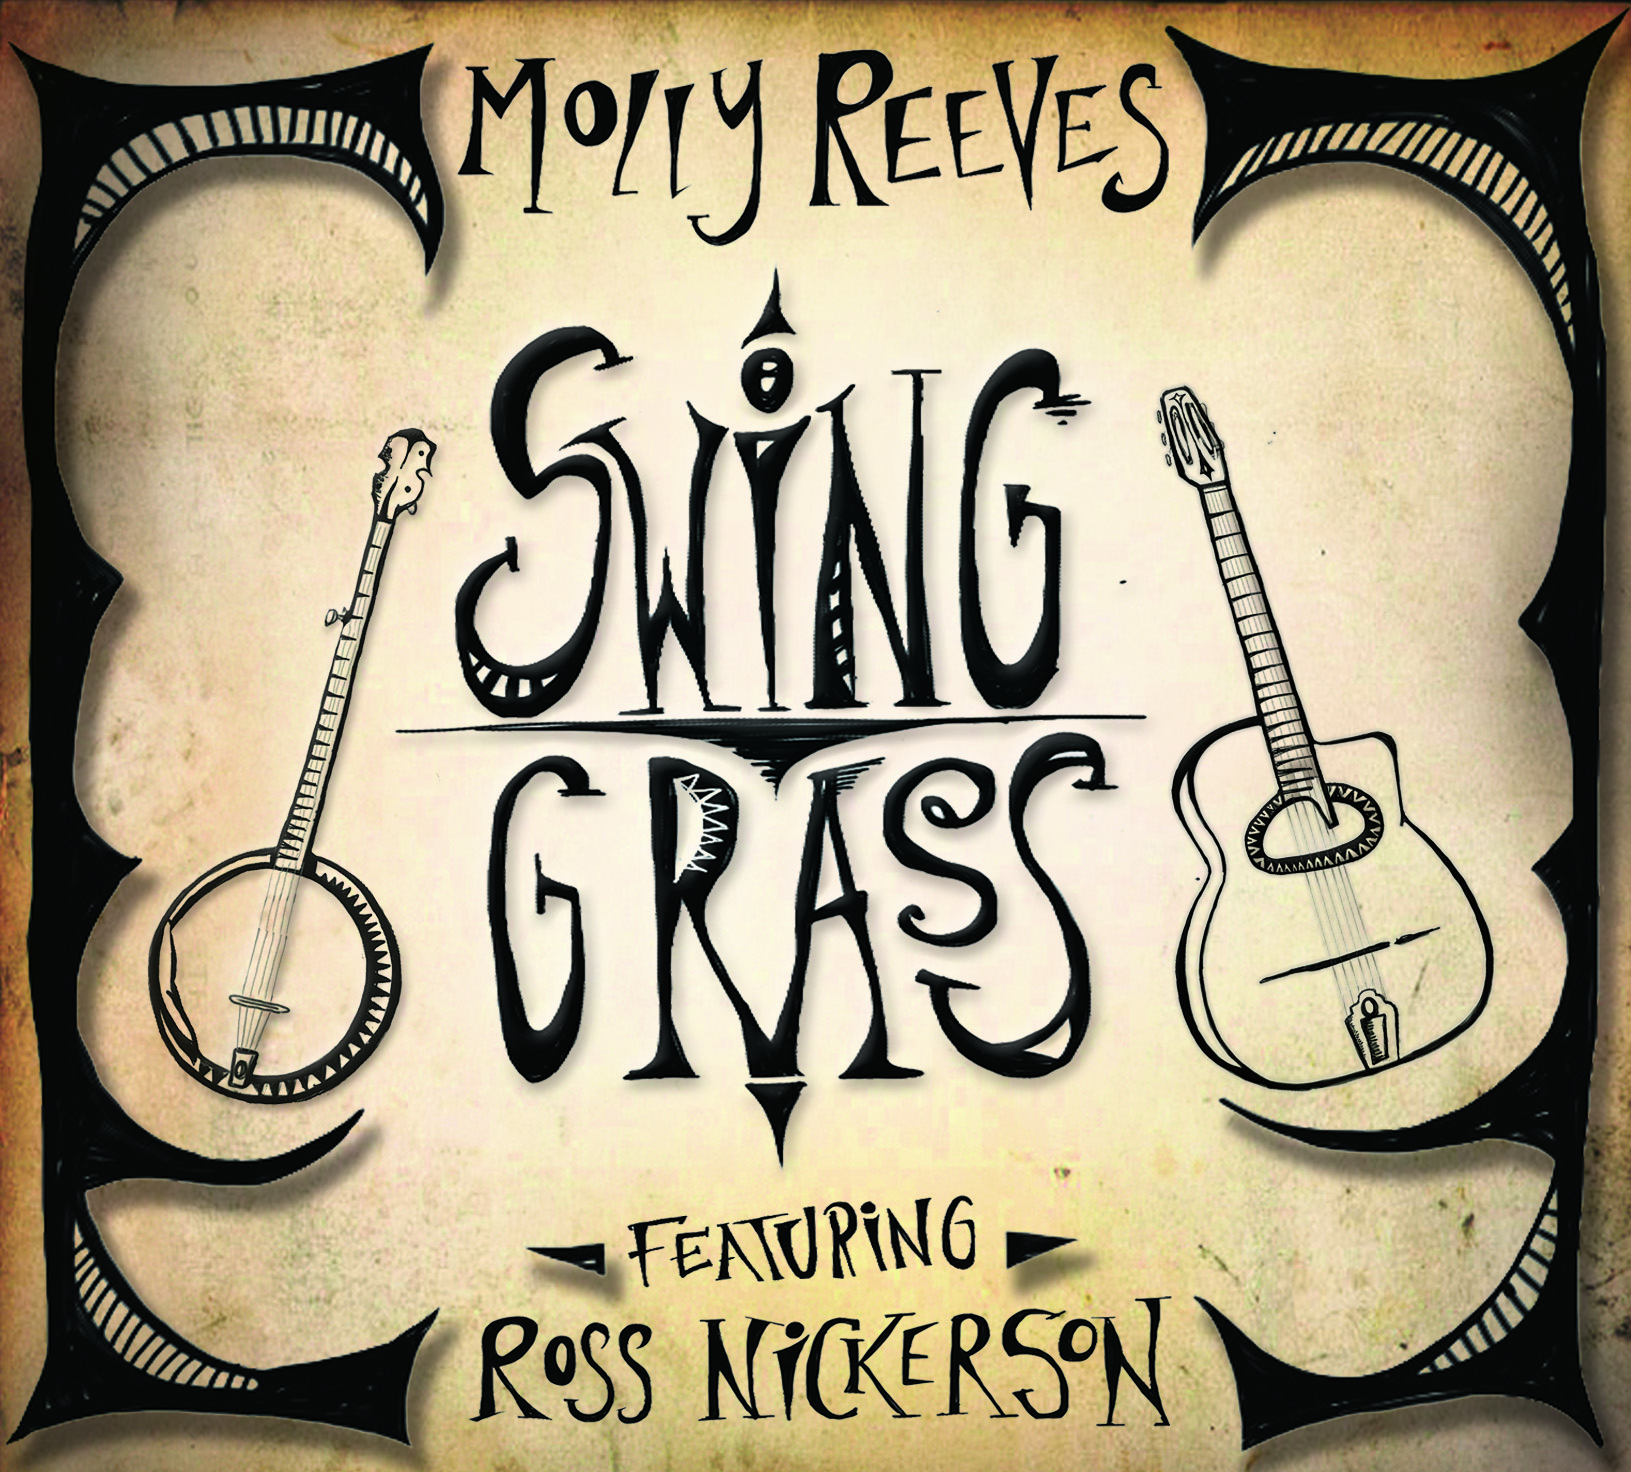 MOLLY REEVES - SWING GRASS